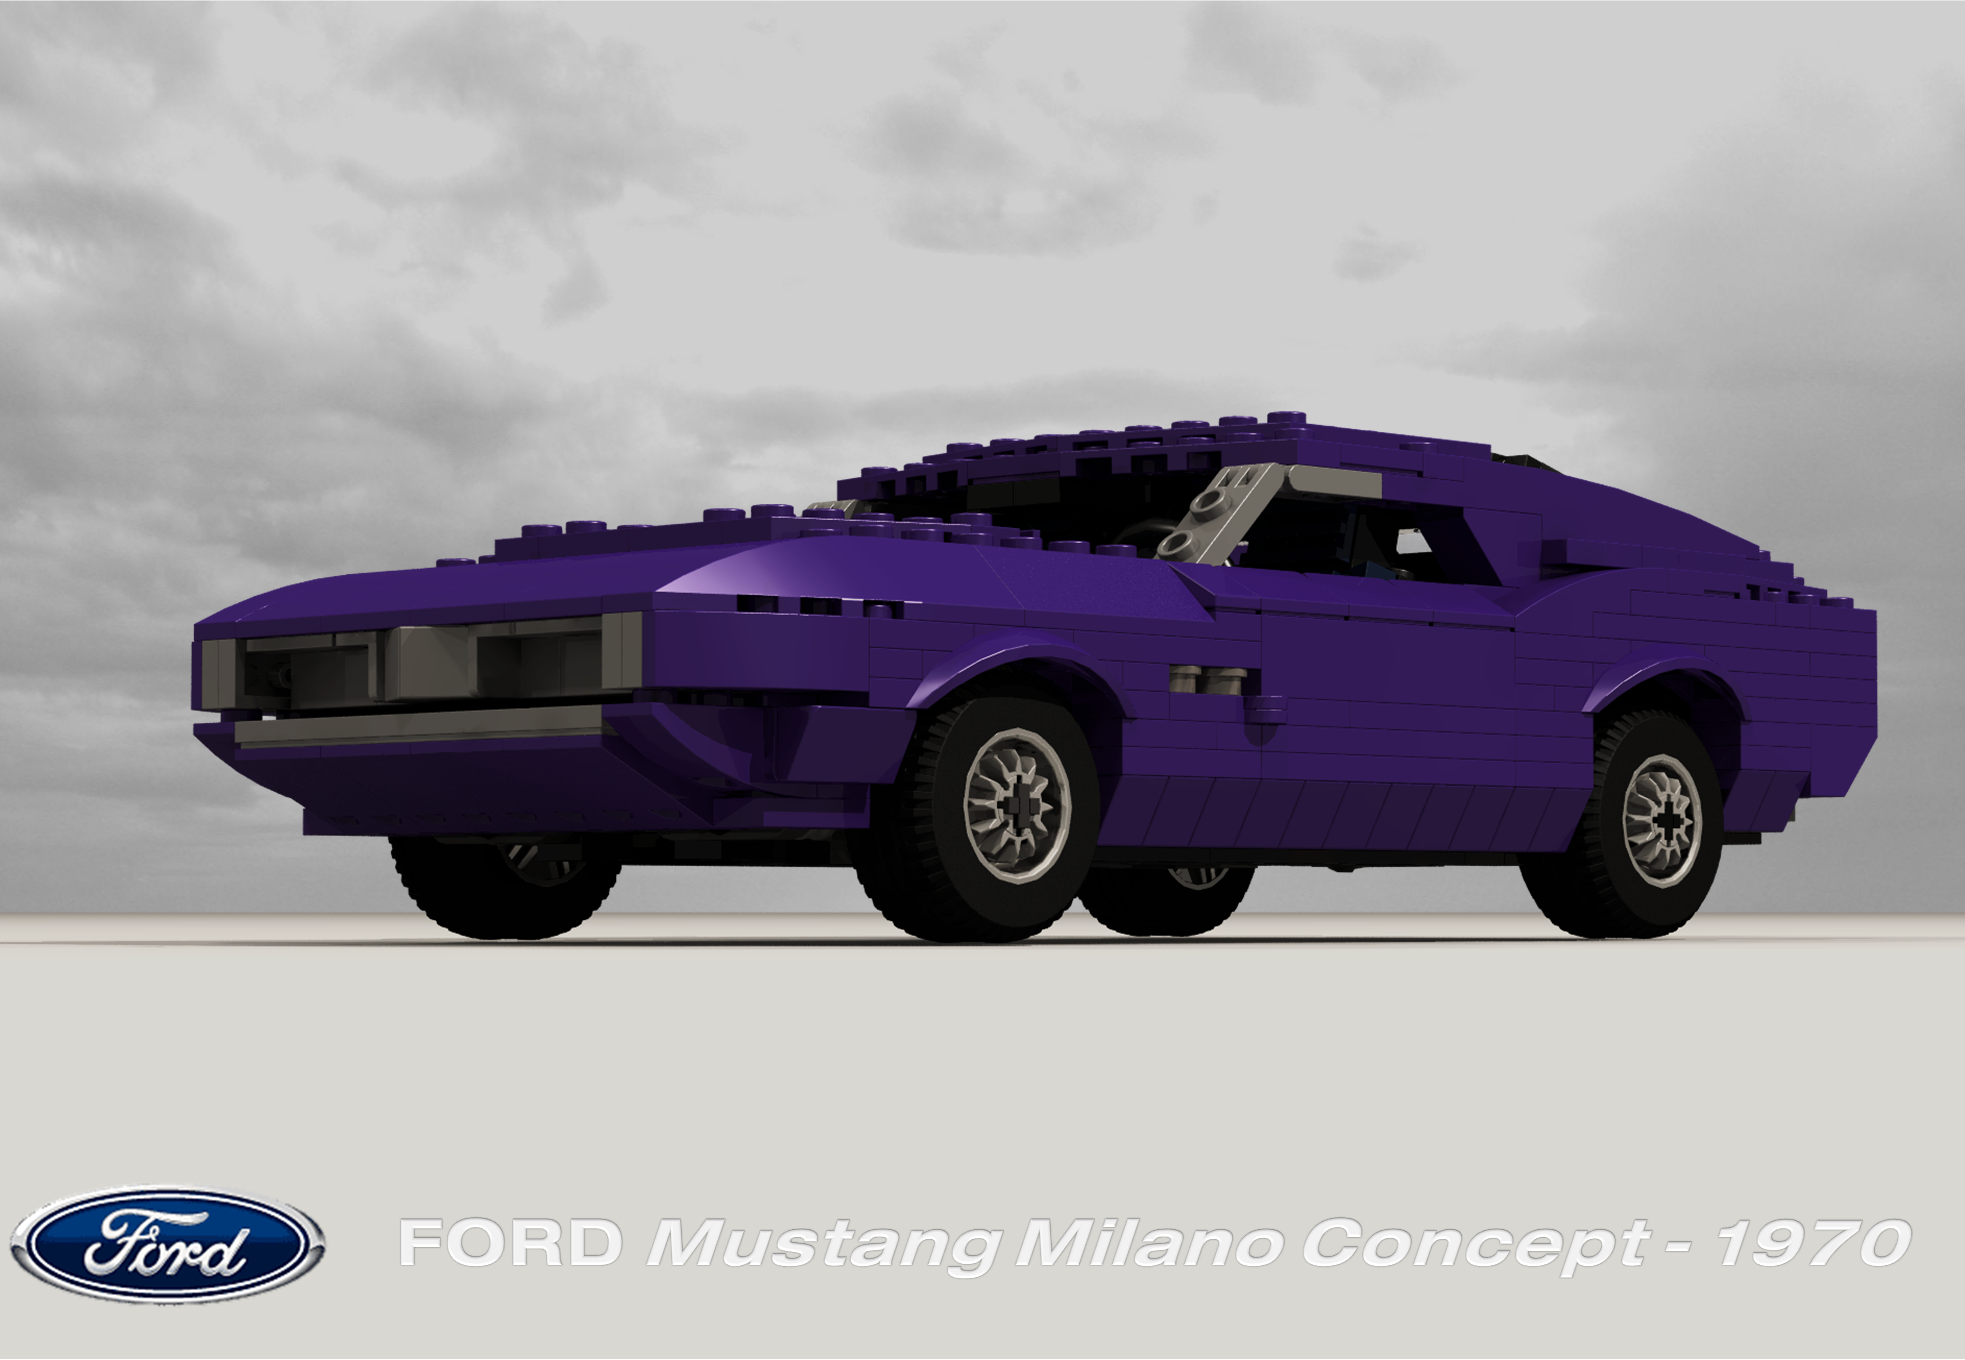 ford_mustang_milano_concept_1970_01.png